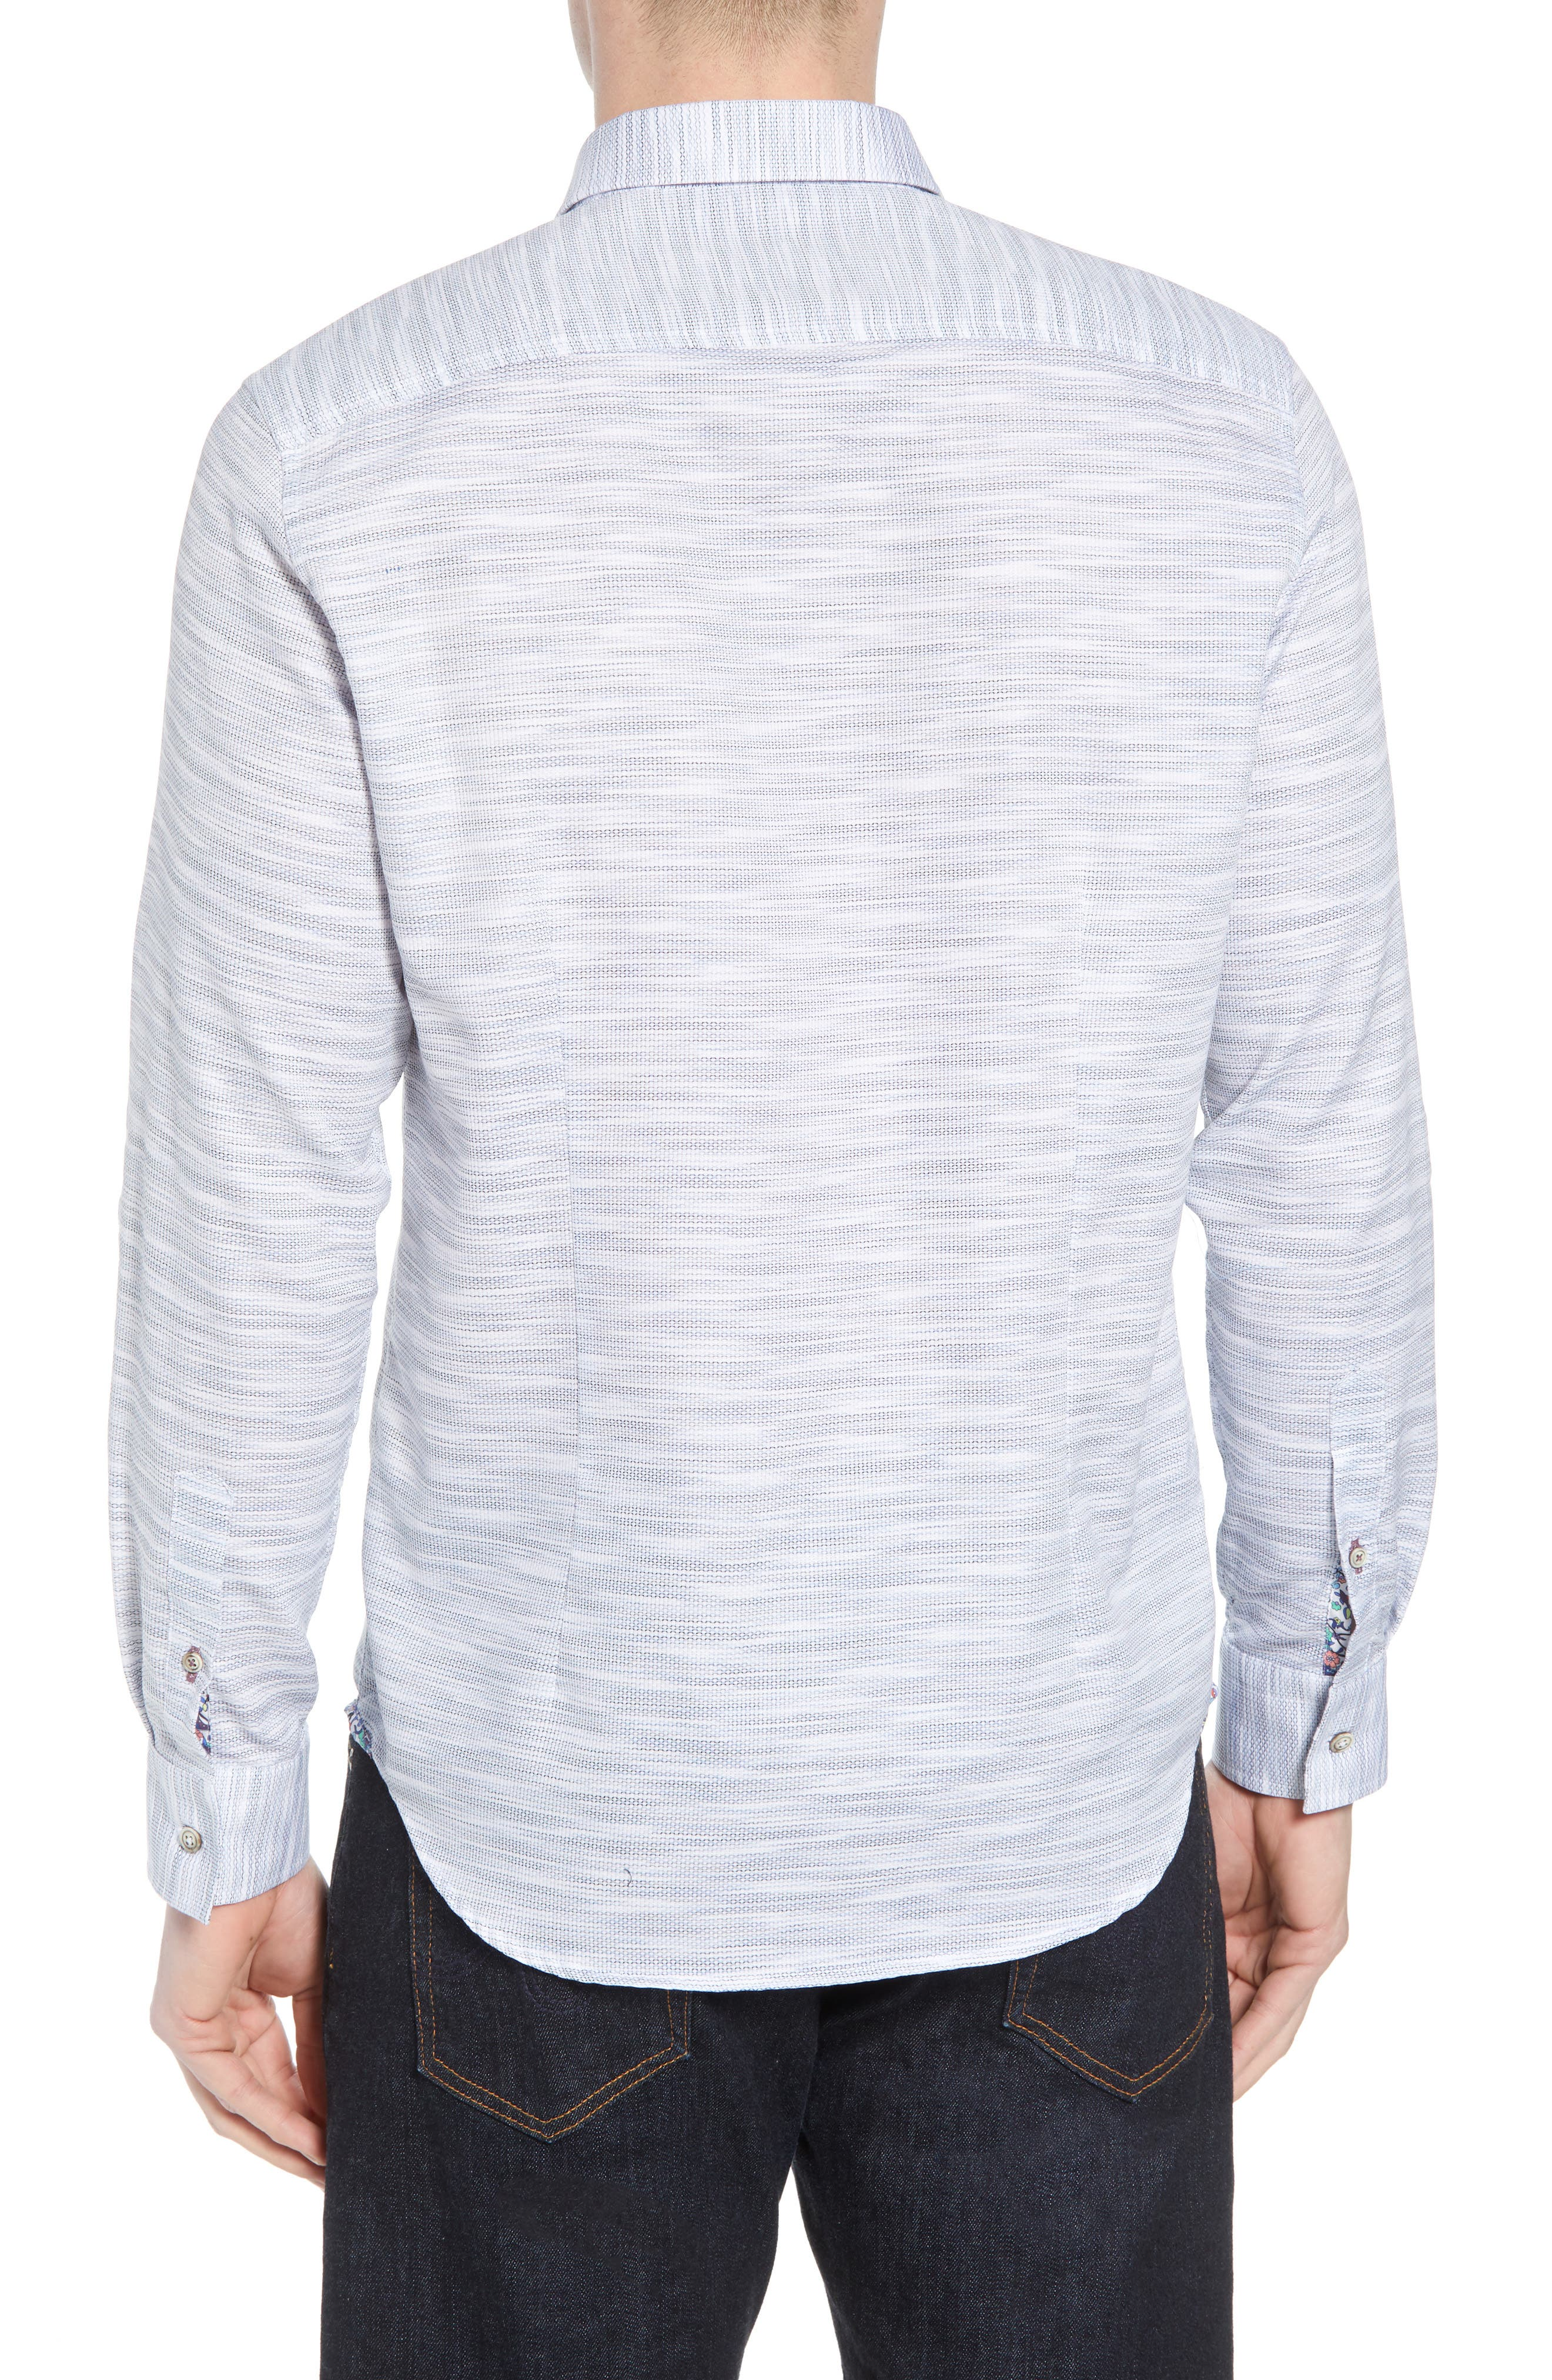 Tully Tailored Fit Sport Shirt,                             Alternate thumbnail 2, color,                             WHITE